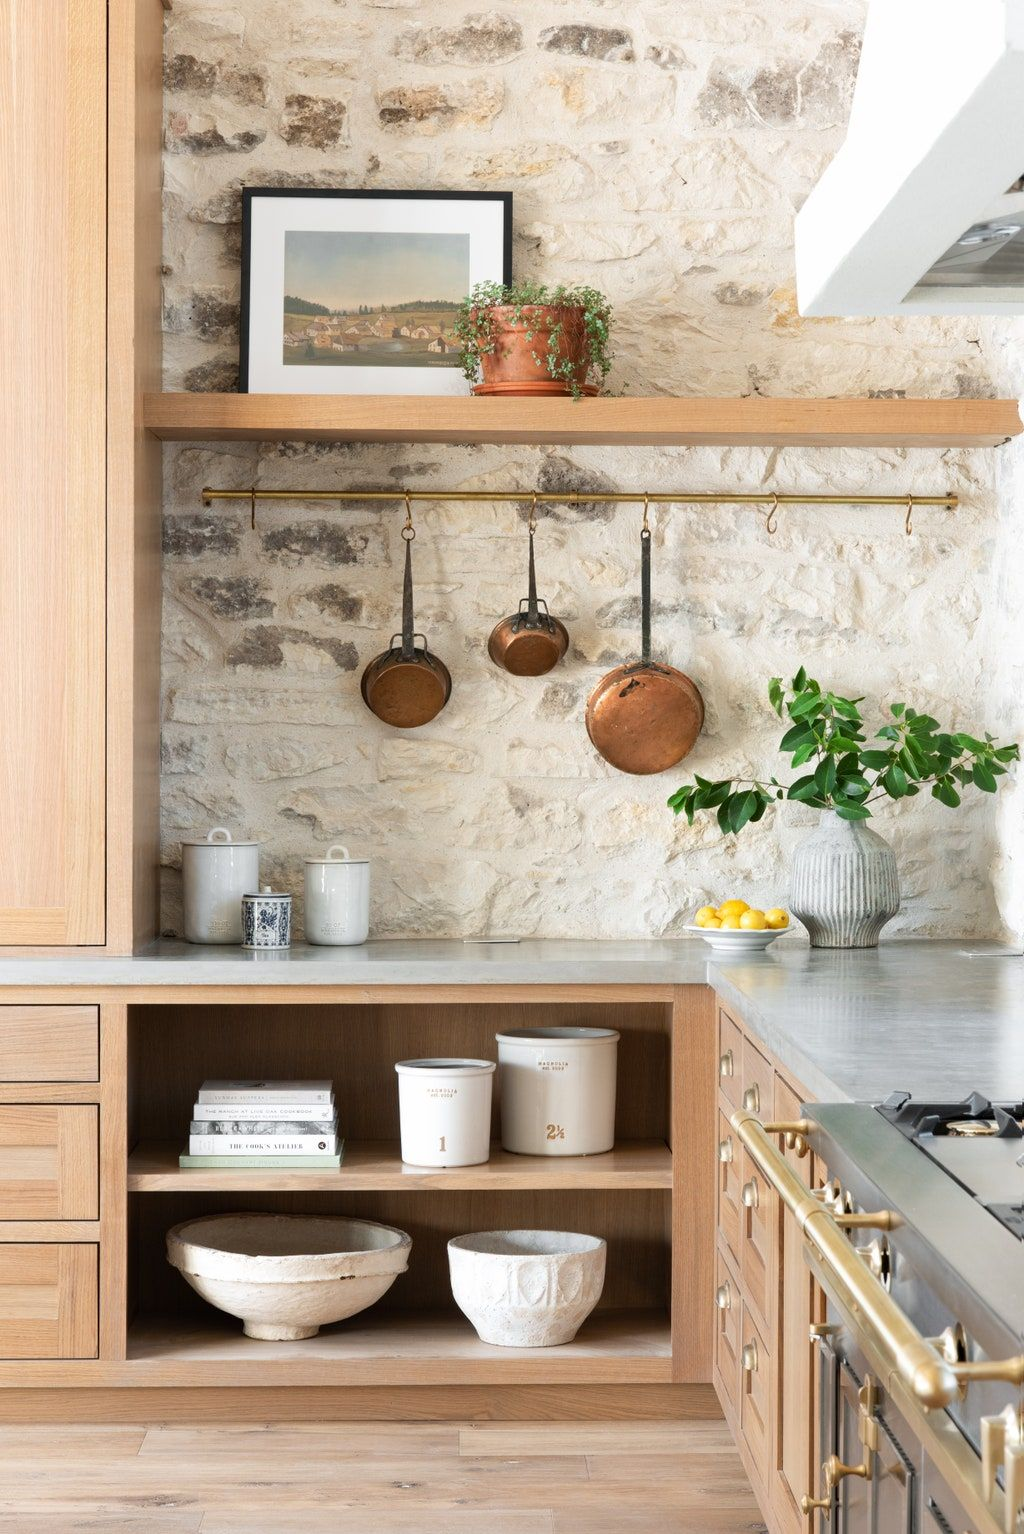 Joanna Gaines Shows Off The Set Of Her Future Cooking Show Kitchen Design House Interior Kitchen Decor